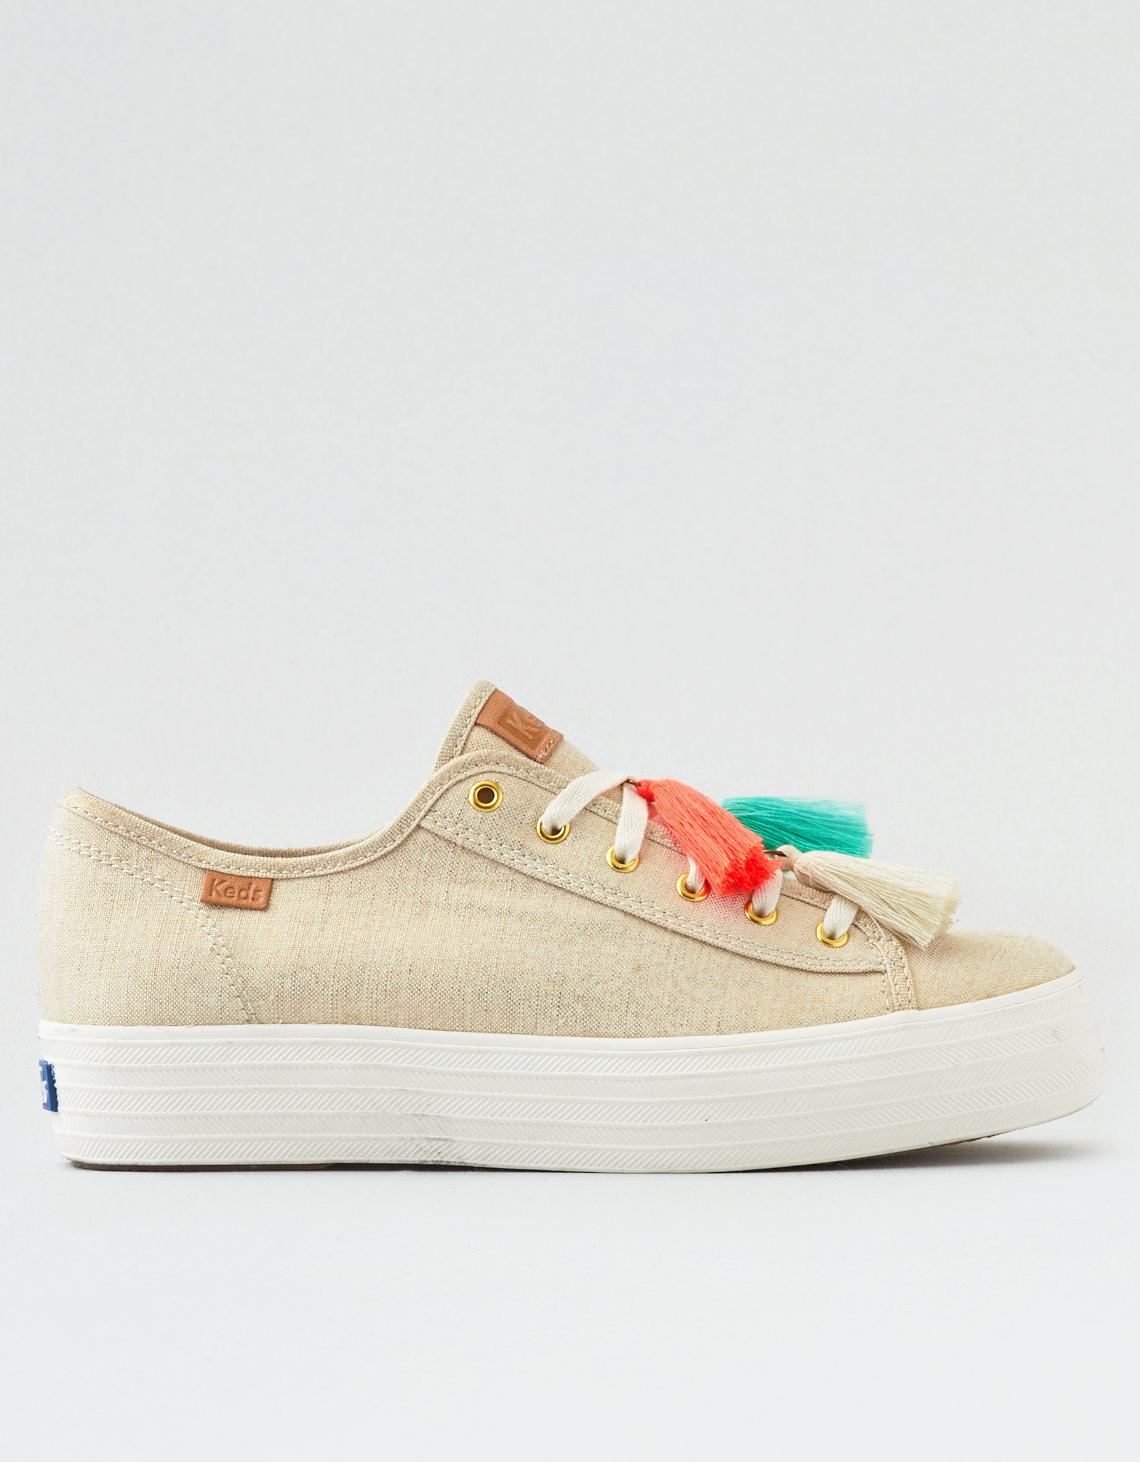 Keds Triple Kick Metallic Tassel Sneakers gIwRJav